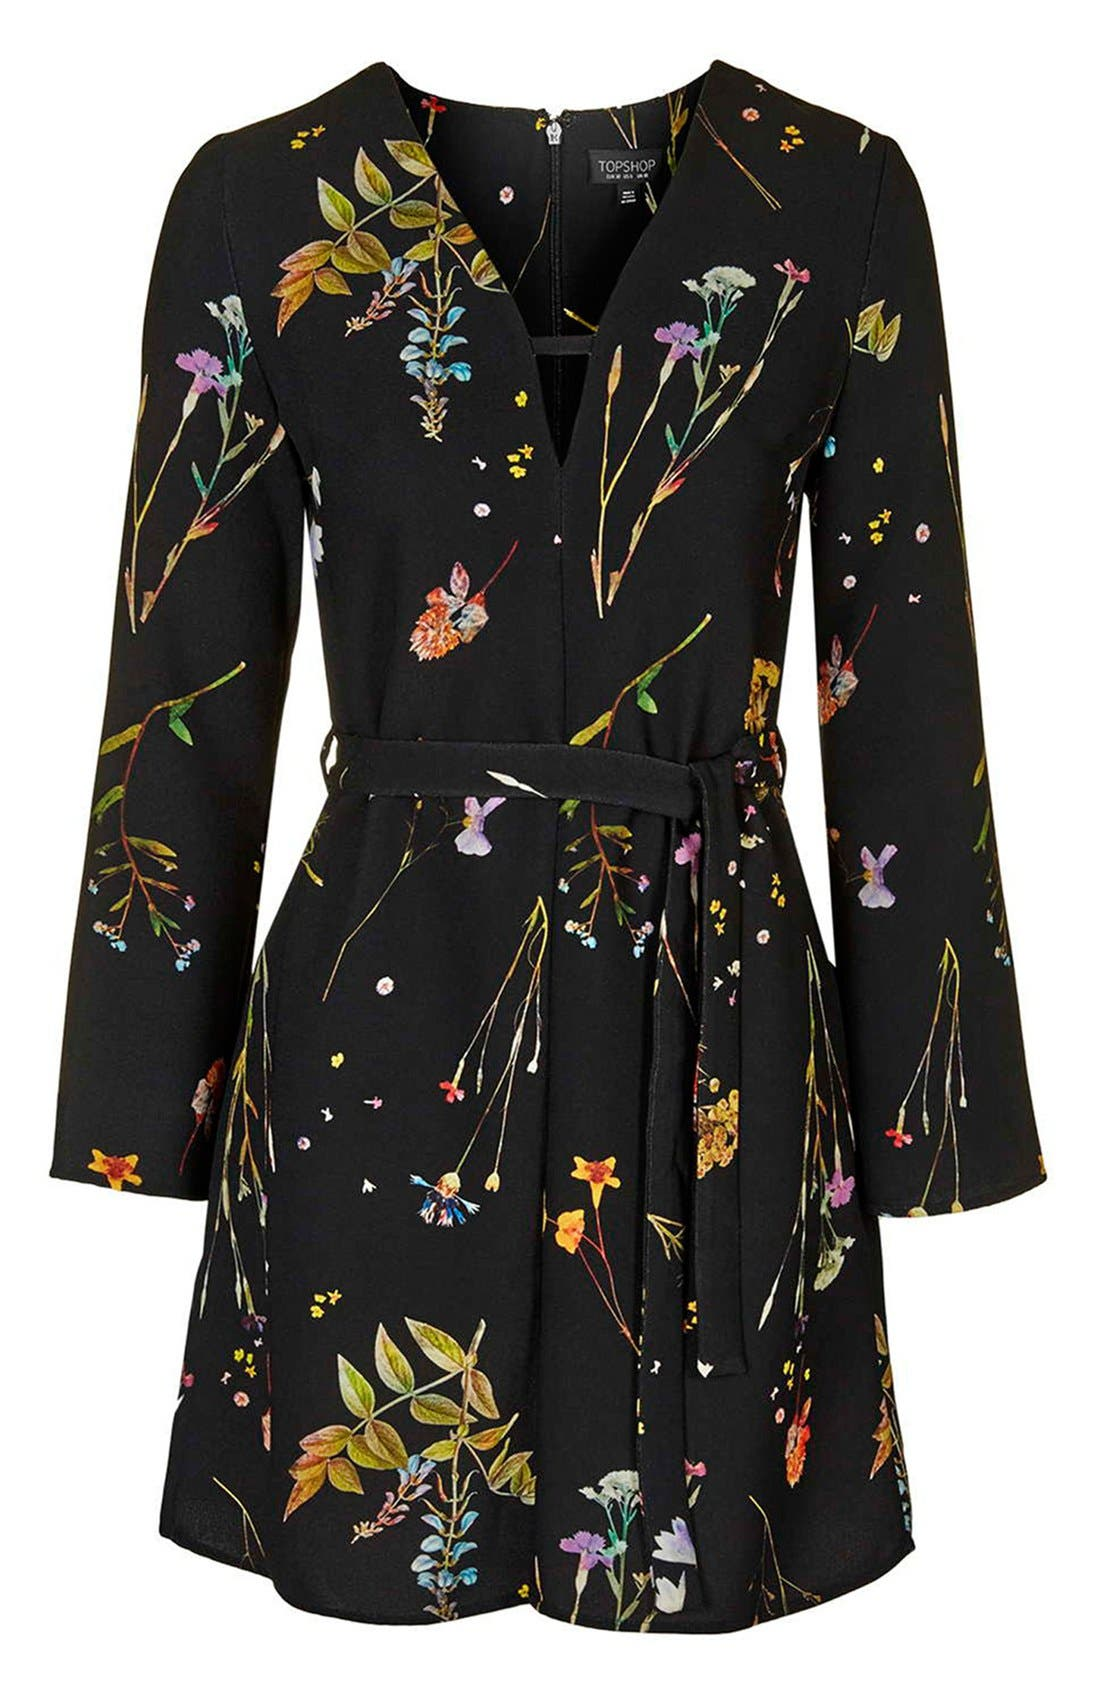 TOPSHOP, Belted Floral Tunic Dress, Alternate thumbnail 5, color, 001